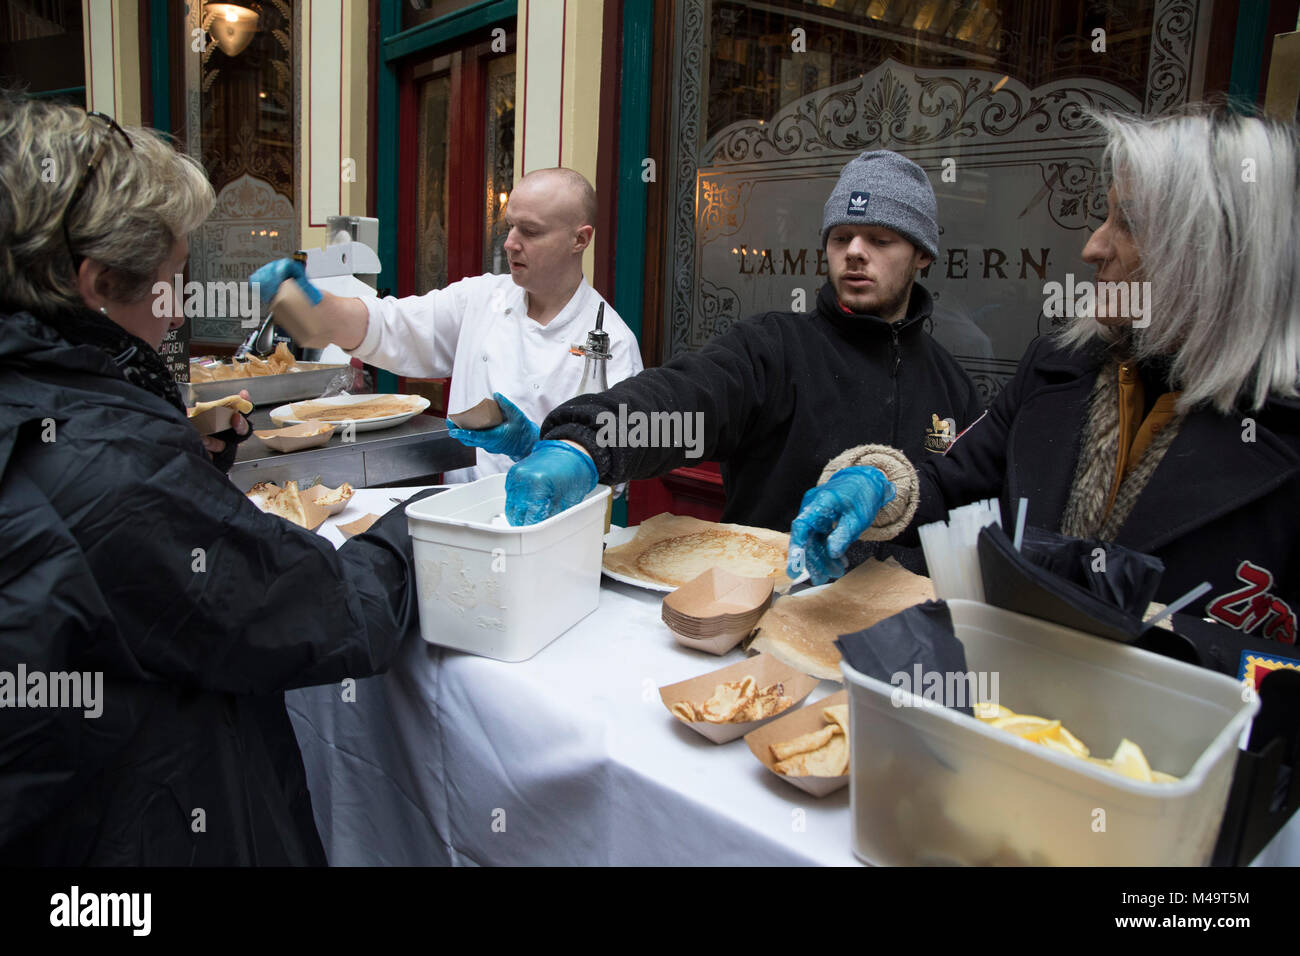 Free pancakes on Shrove Tuesday as festivities warm up for the Leadenhall Market Pancake Day Race on 13th February - Stock Image